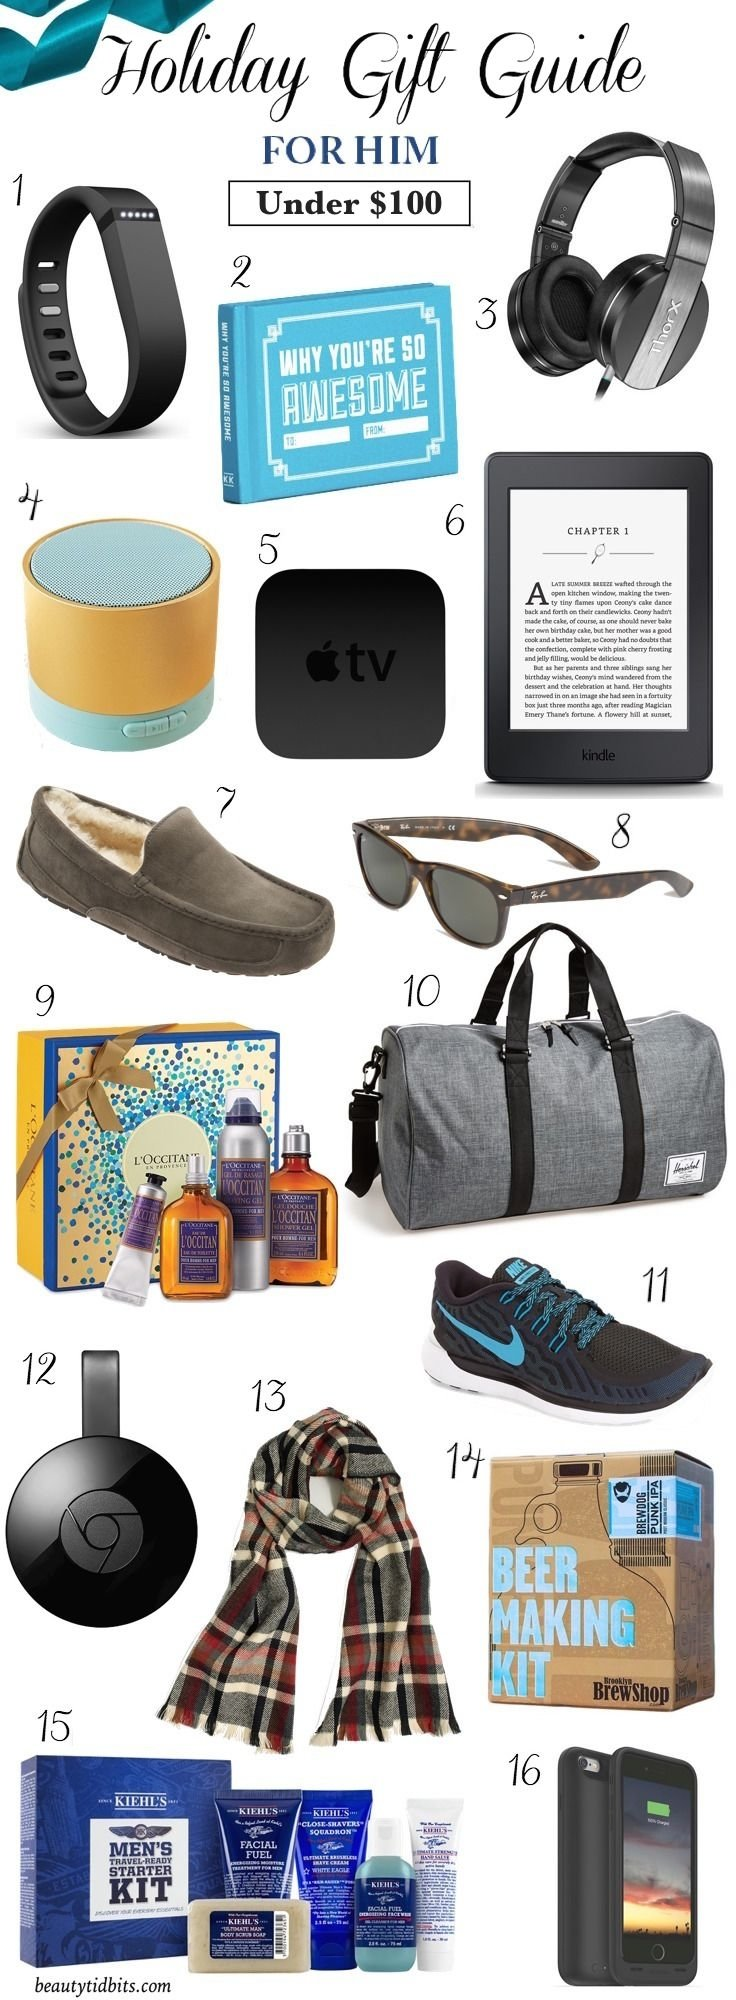 10 Attractive Ideas For Christmas Gifts For Men 126 best holiday gift giving images on pinterest christmas 2020